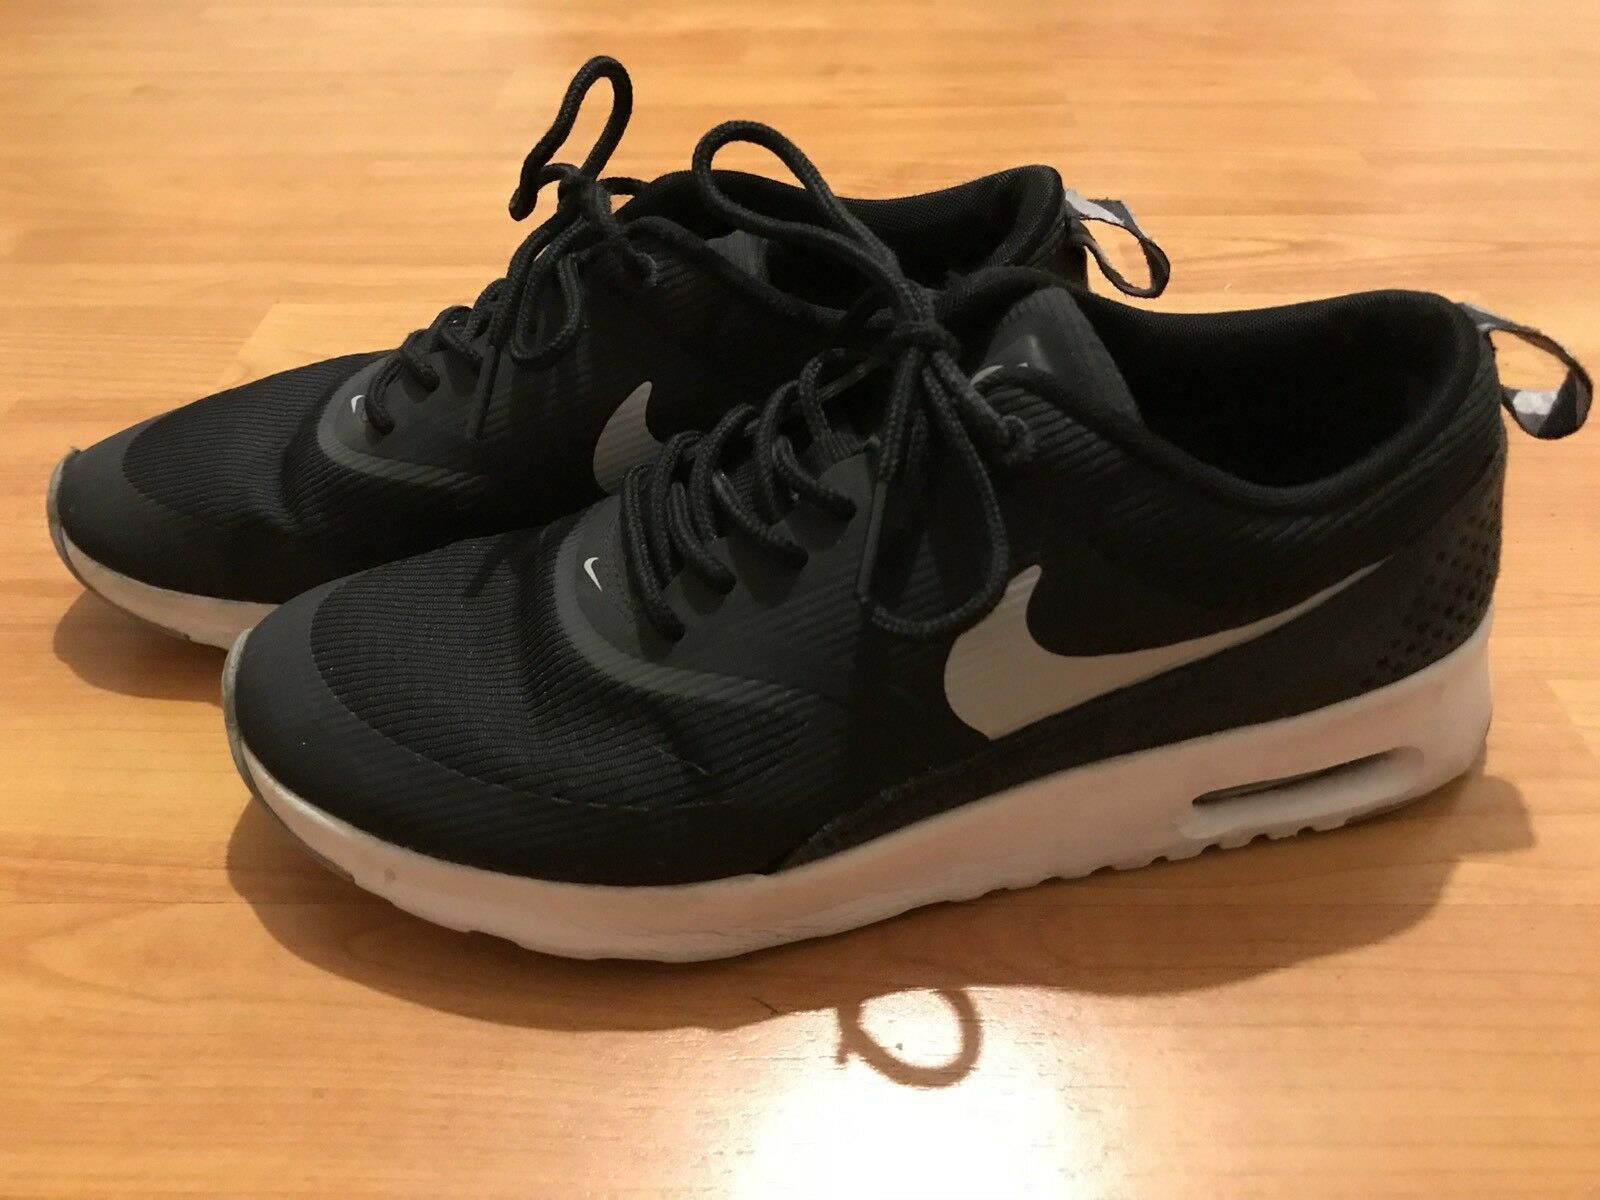 Nike Air Max Thea Mens Black White Running Training Sneakers Shoes Comfortable Brand discount